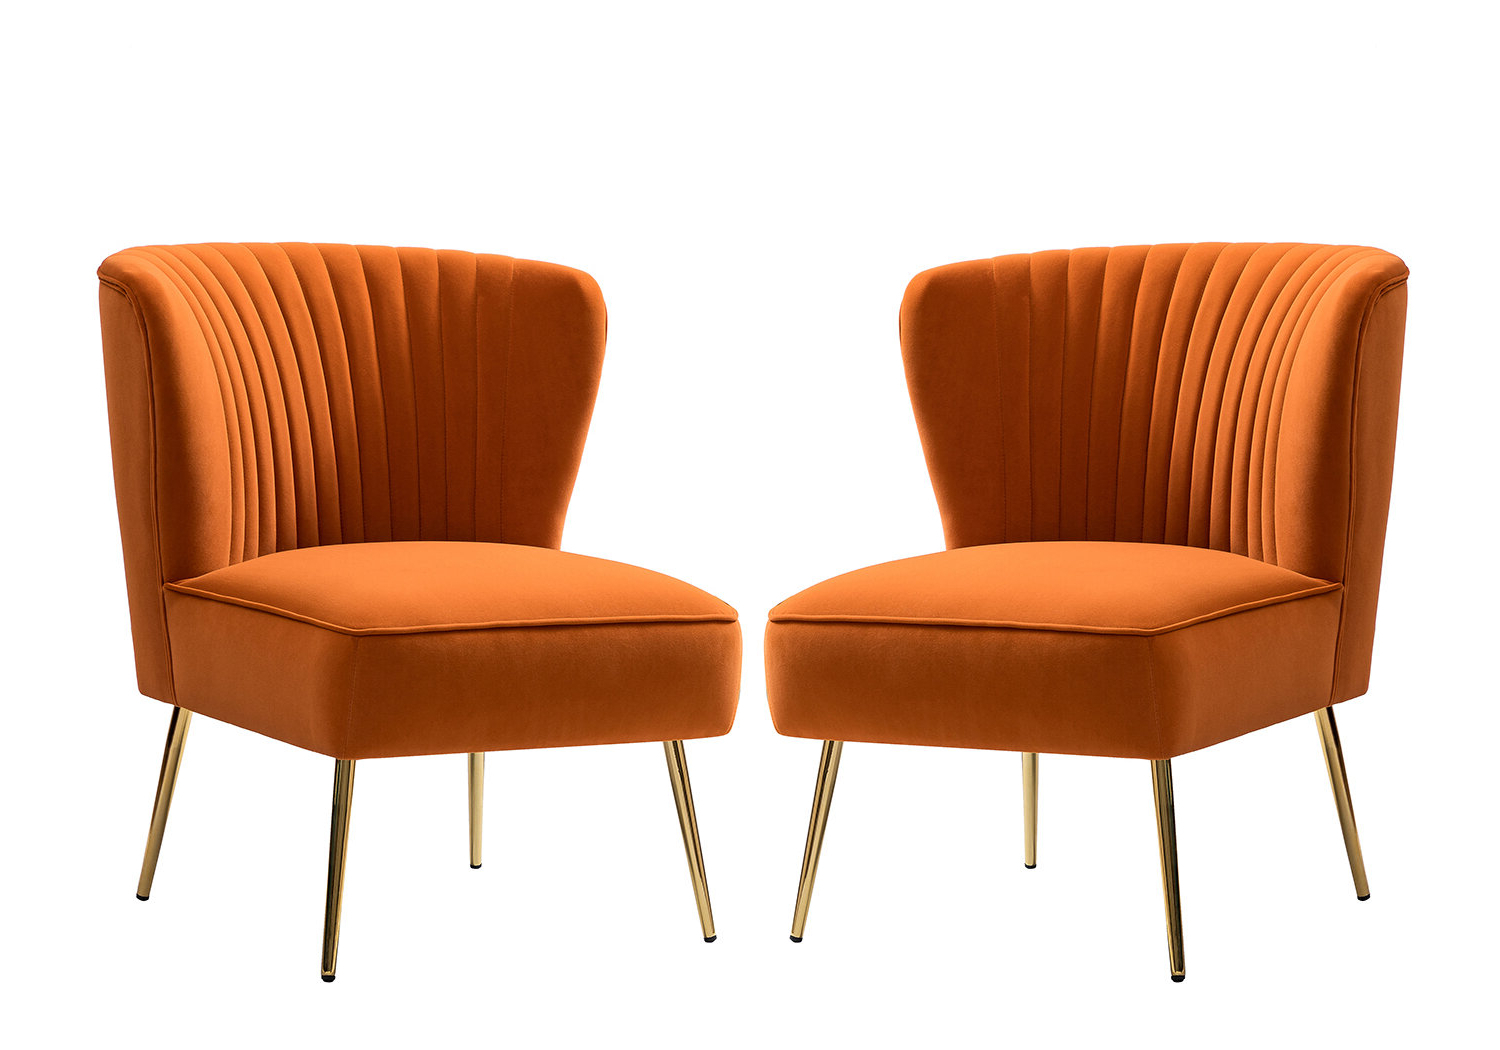 Preferred Erasmus Side Chair For Erasmus Side Chairs (View 5 of 20)